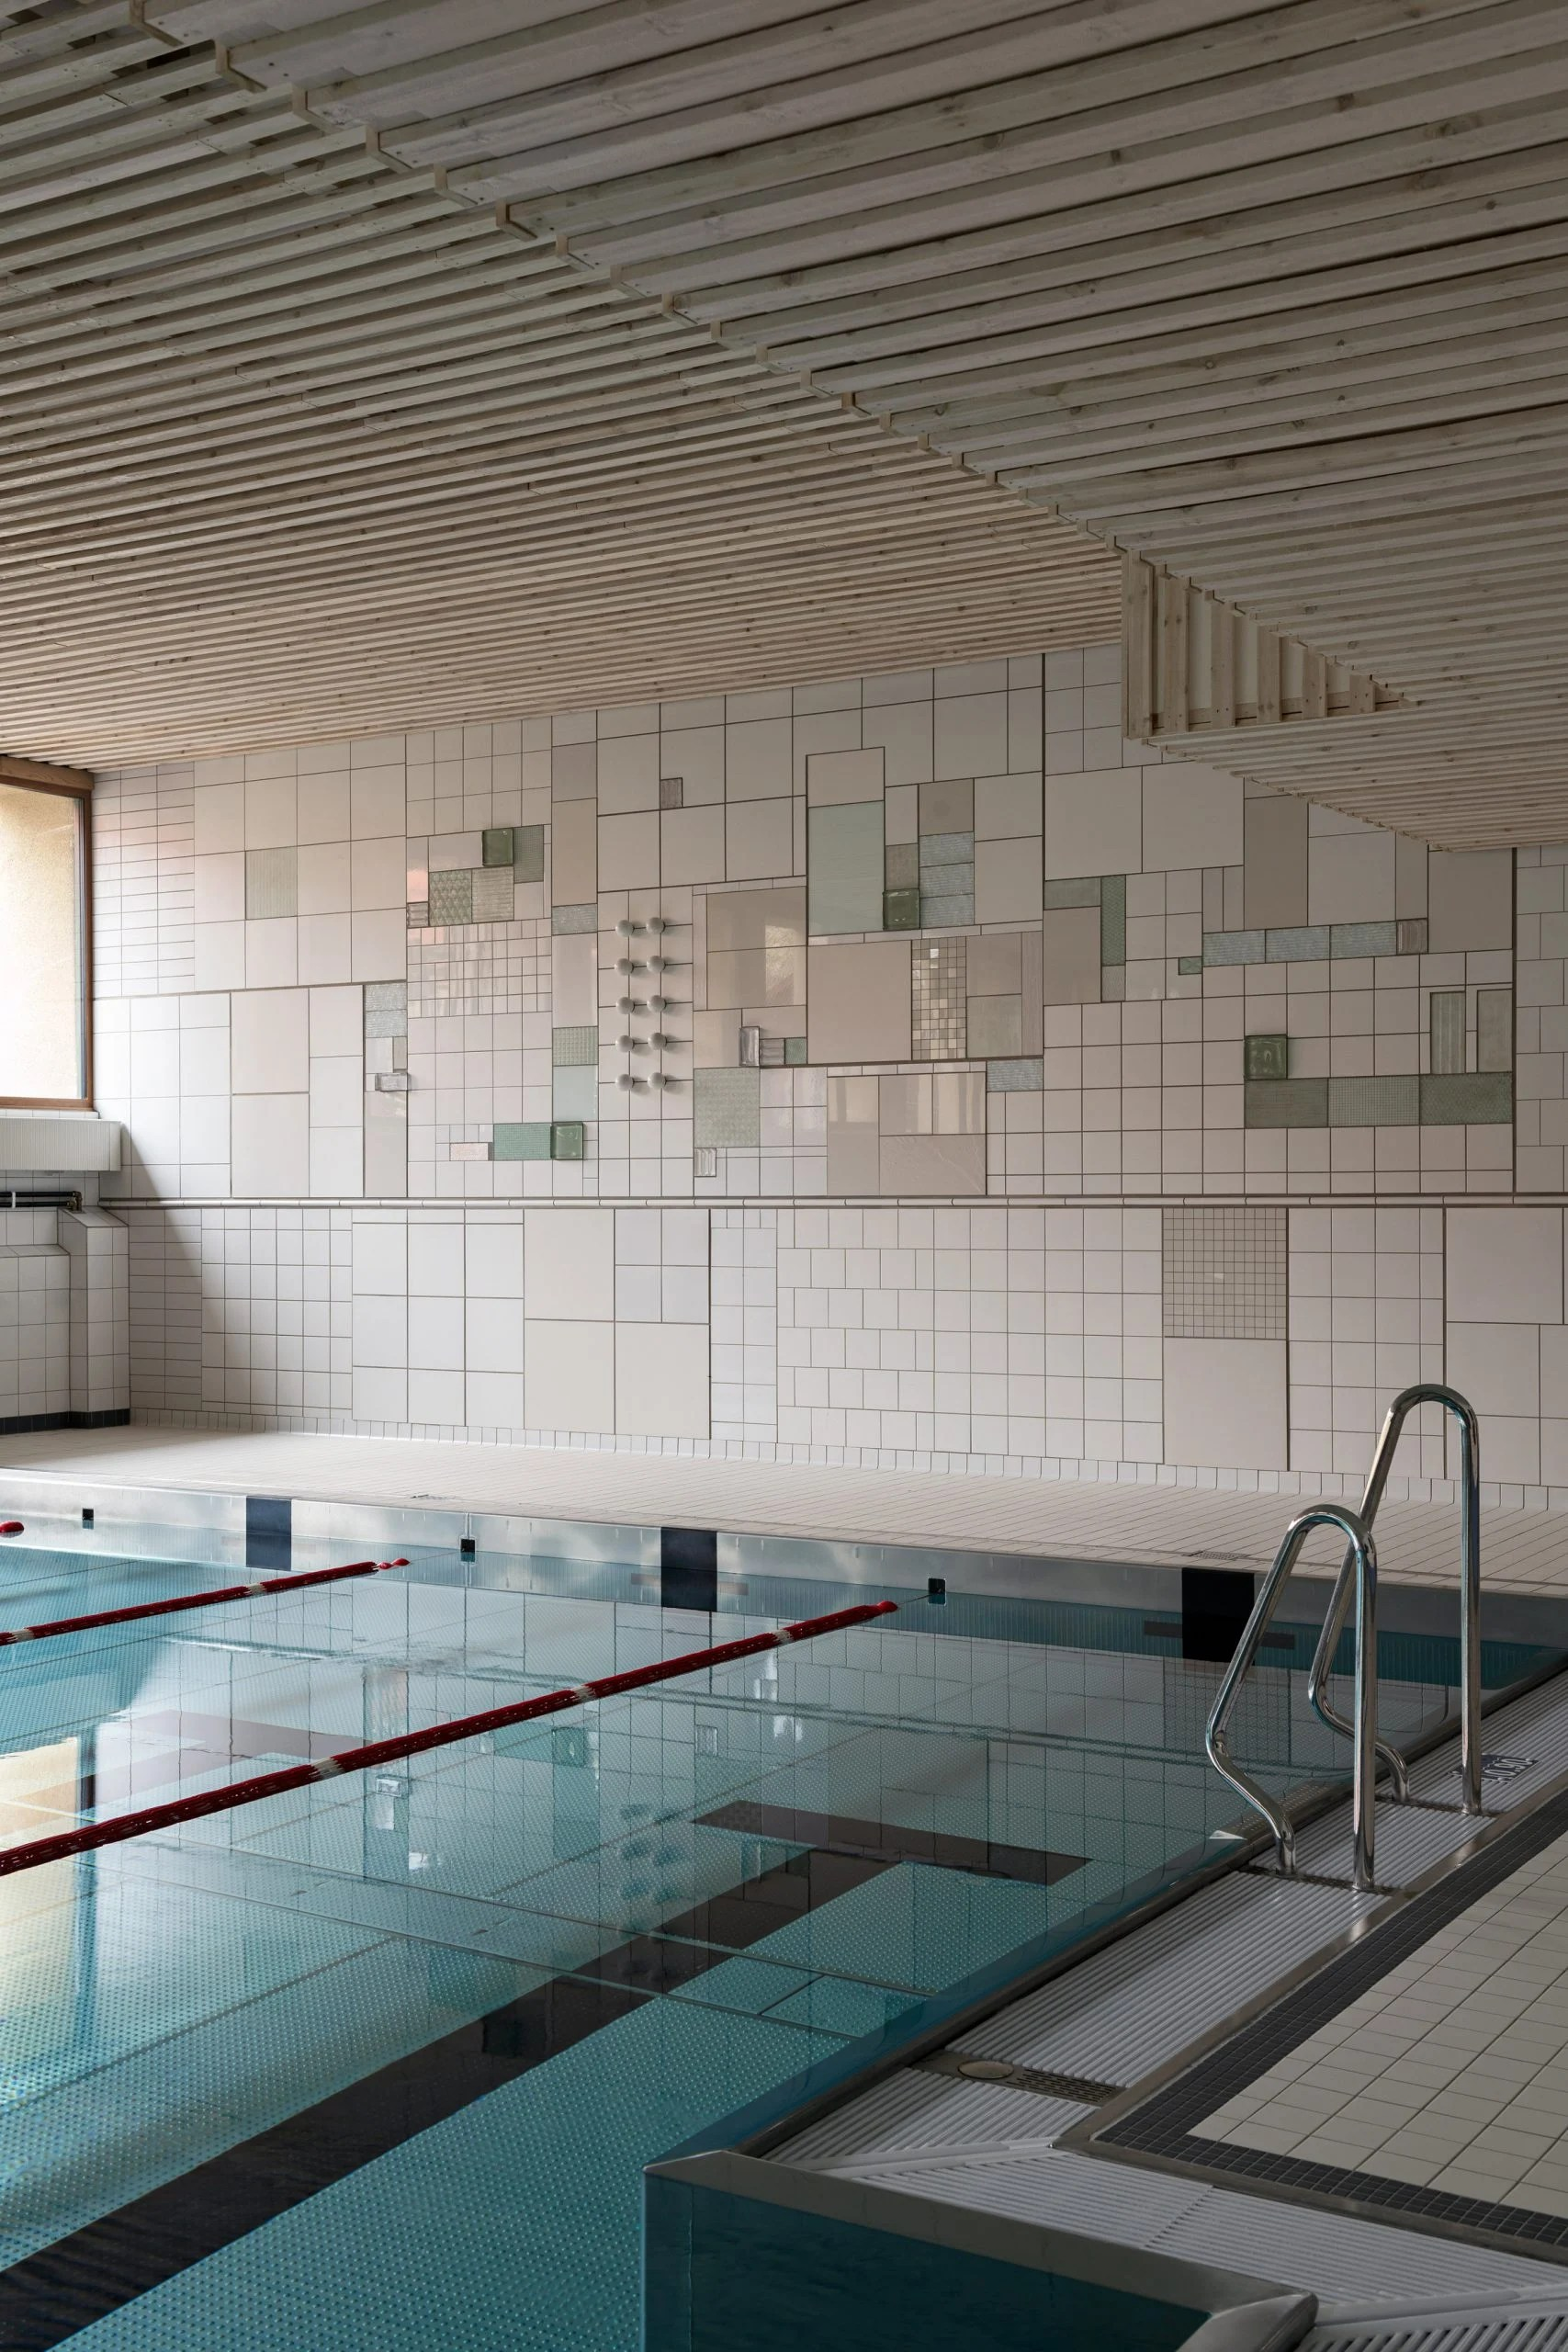 Swimming pool mural by Folkform